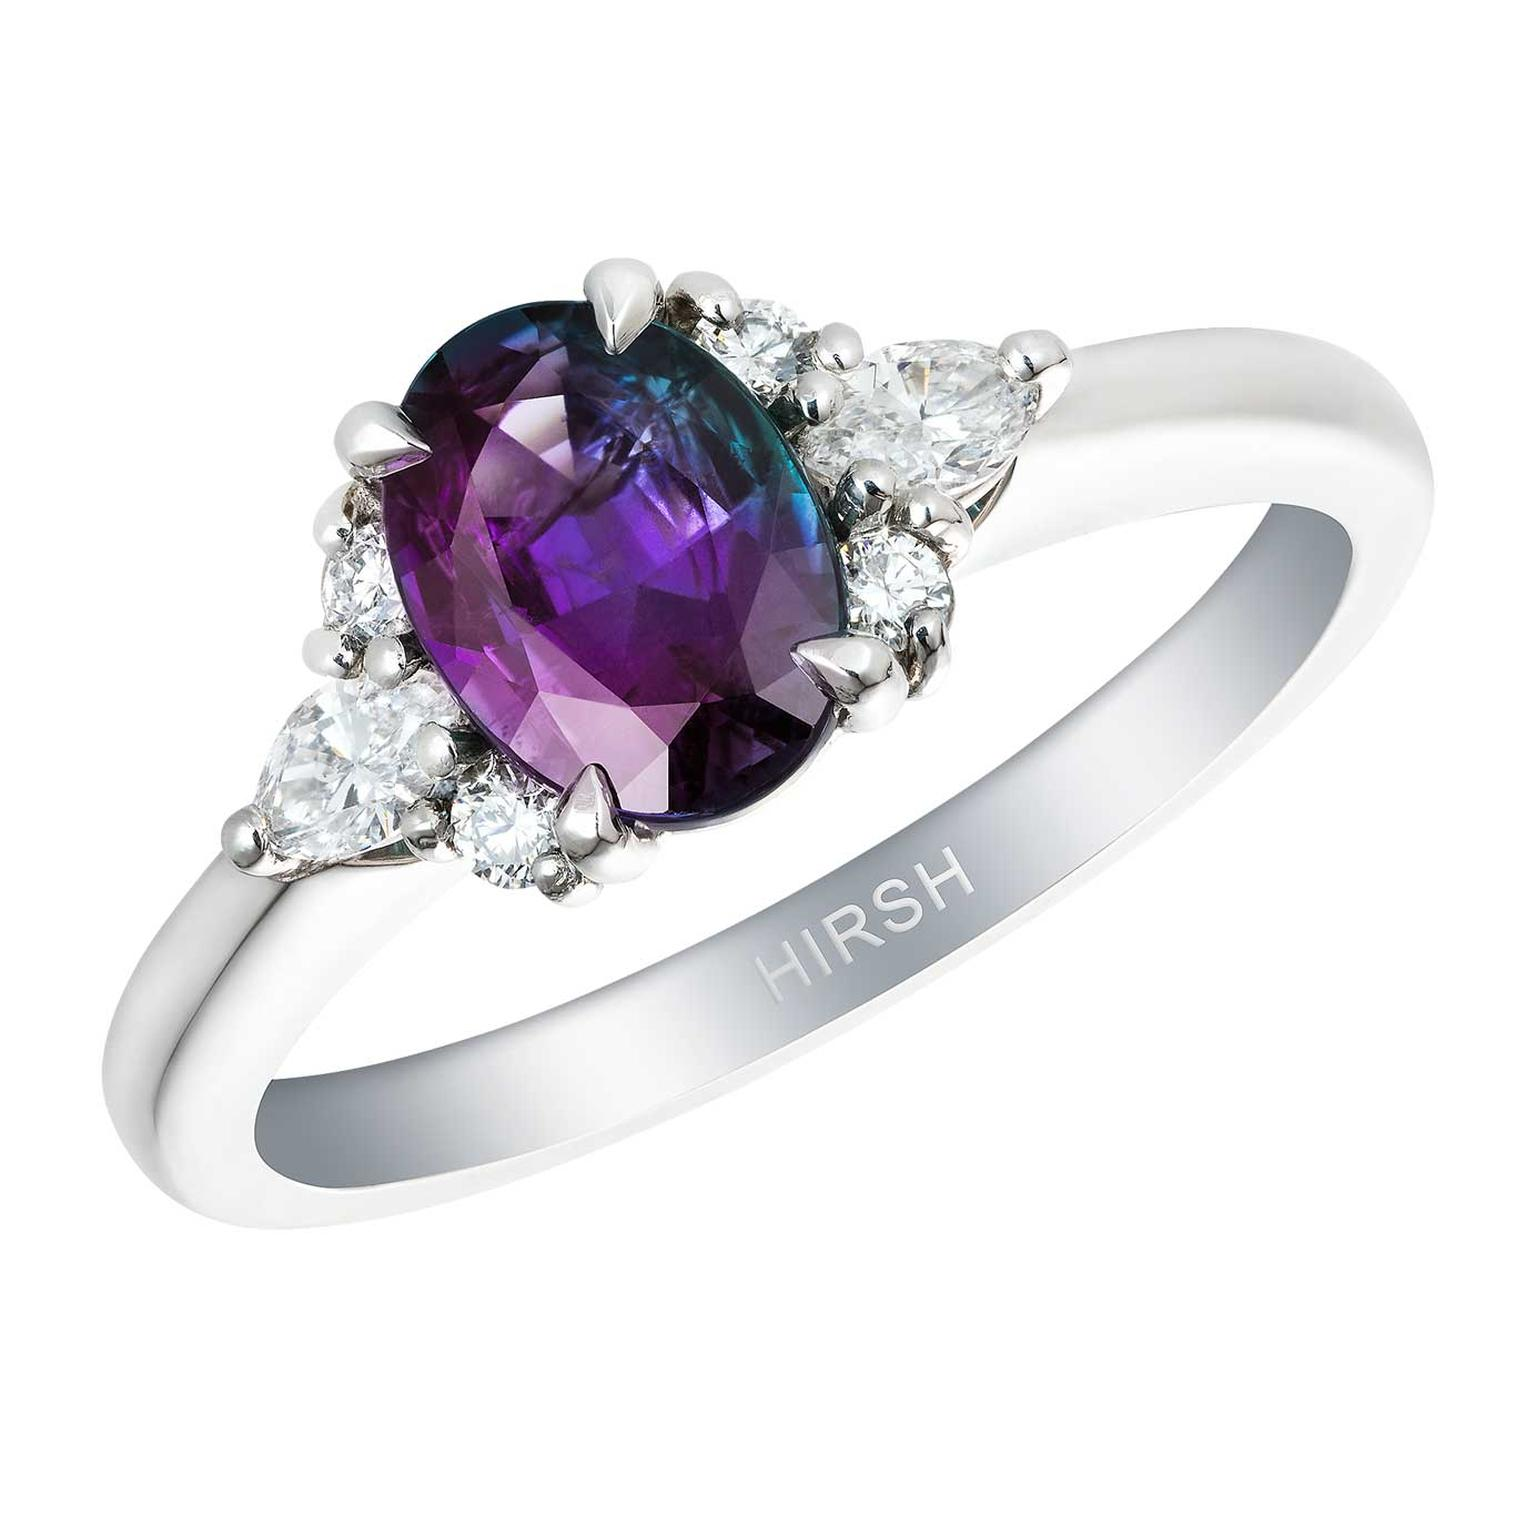 Papillon ring by Hirsh London with colour changing Alexandrite